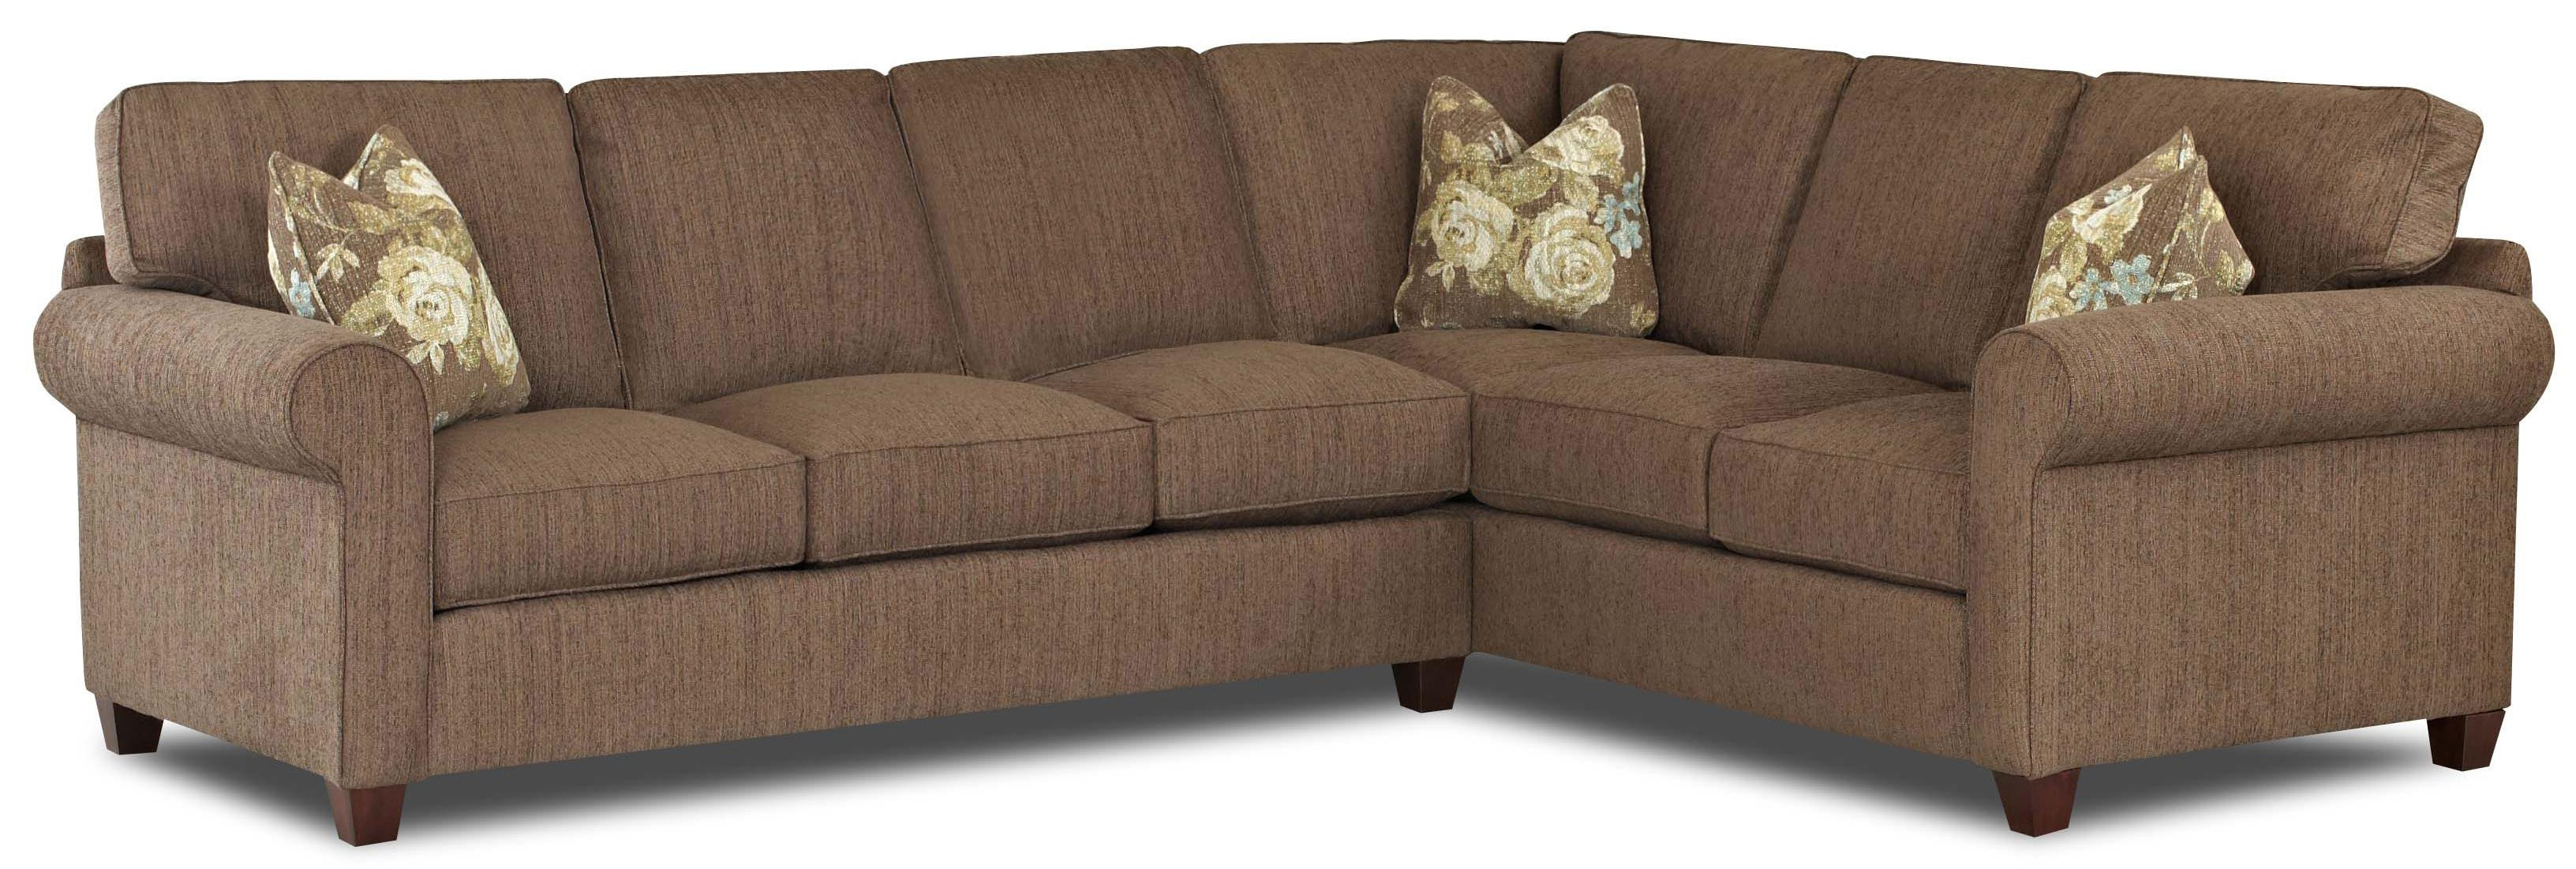 2019 Avery 2 Piece Sectionals With Raf Armless Chaise Intended For 2 Piece Sectional Sofa Slipcovers – Home Decor (View 8 of 20)